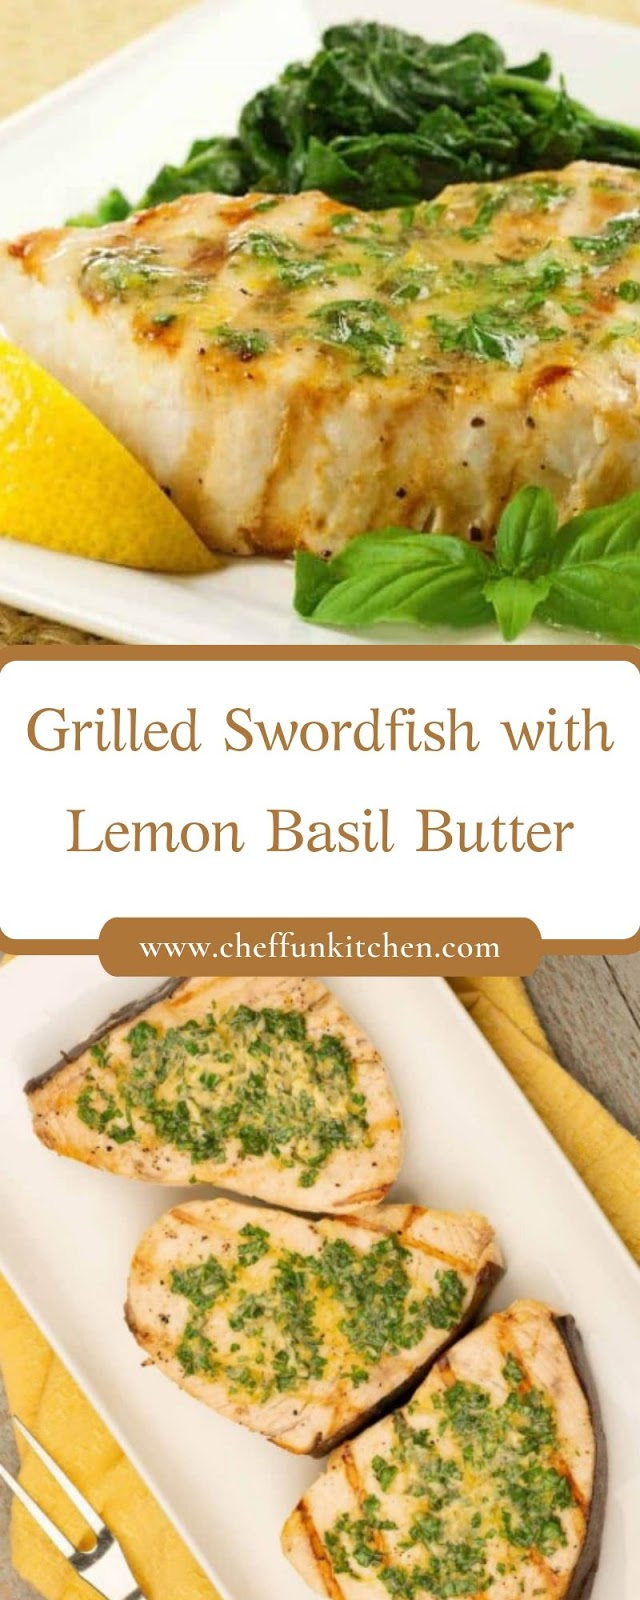 Grilled Swordfish with Lemon Basil Butter